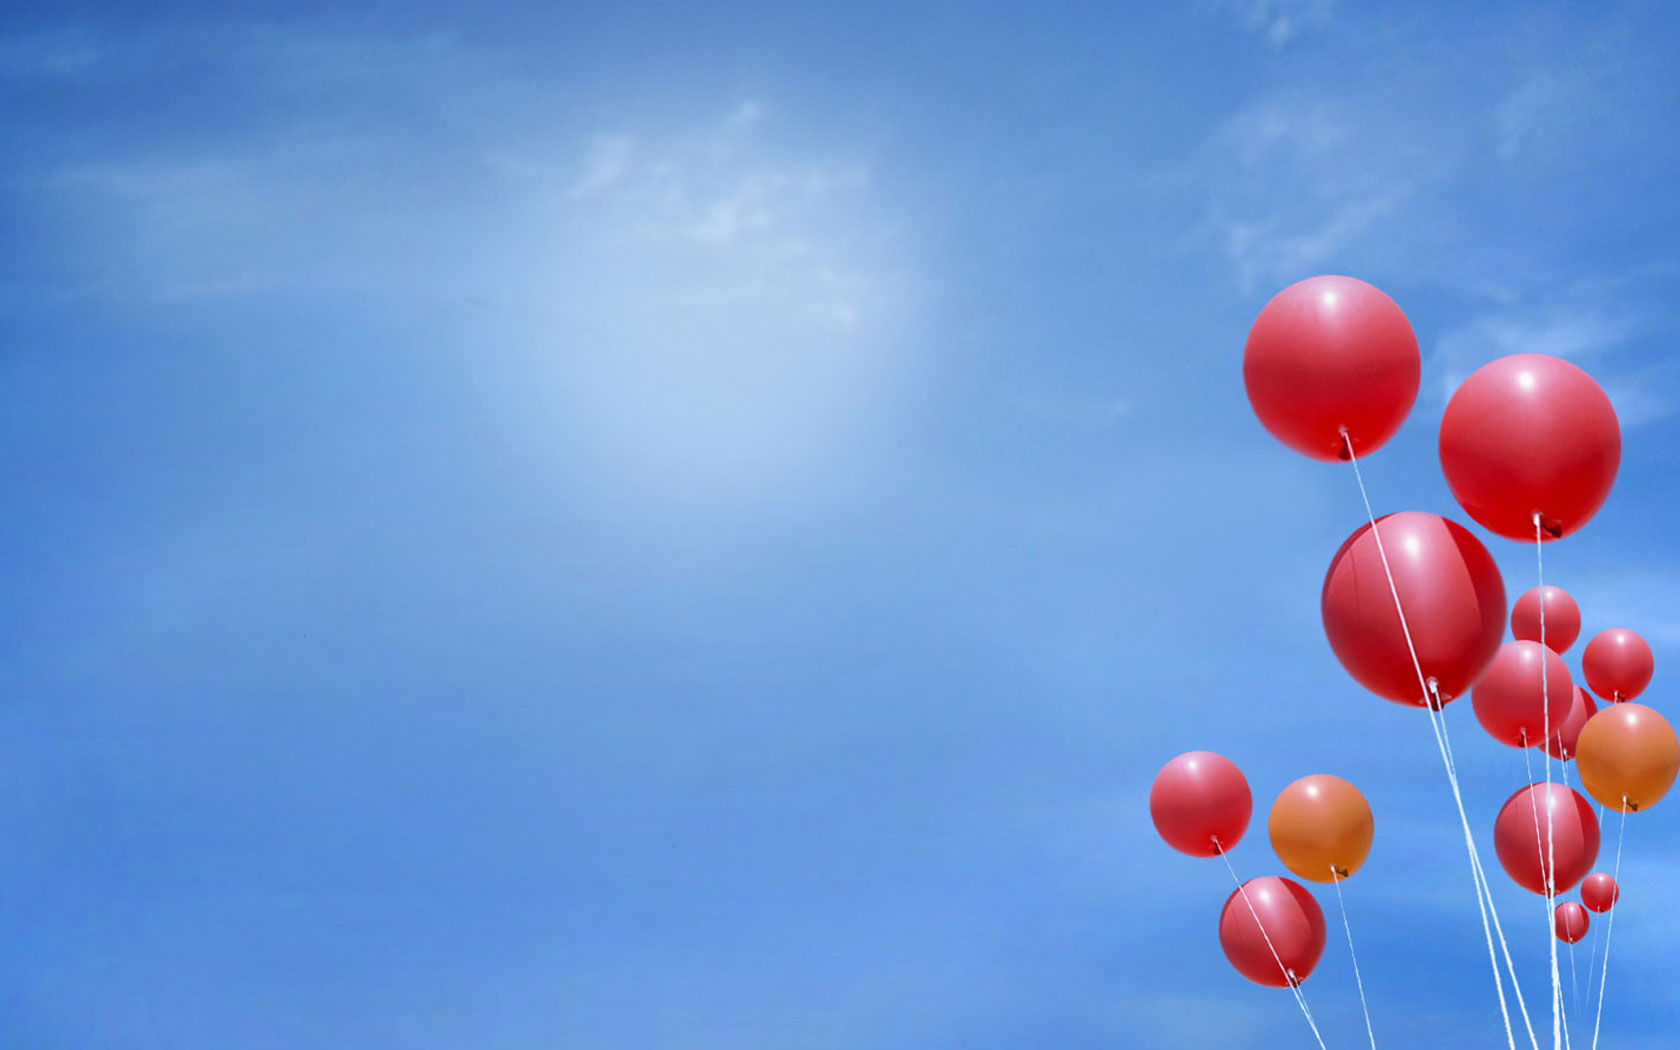 balloons background wallpaper - photo #35